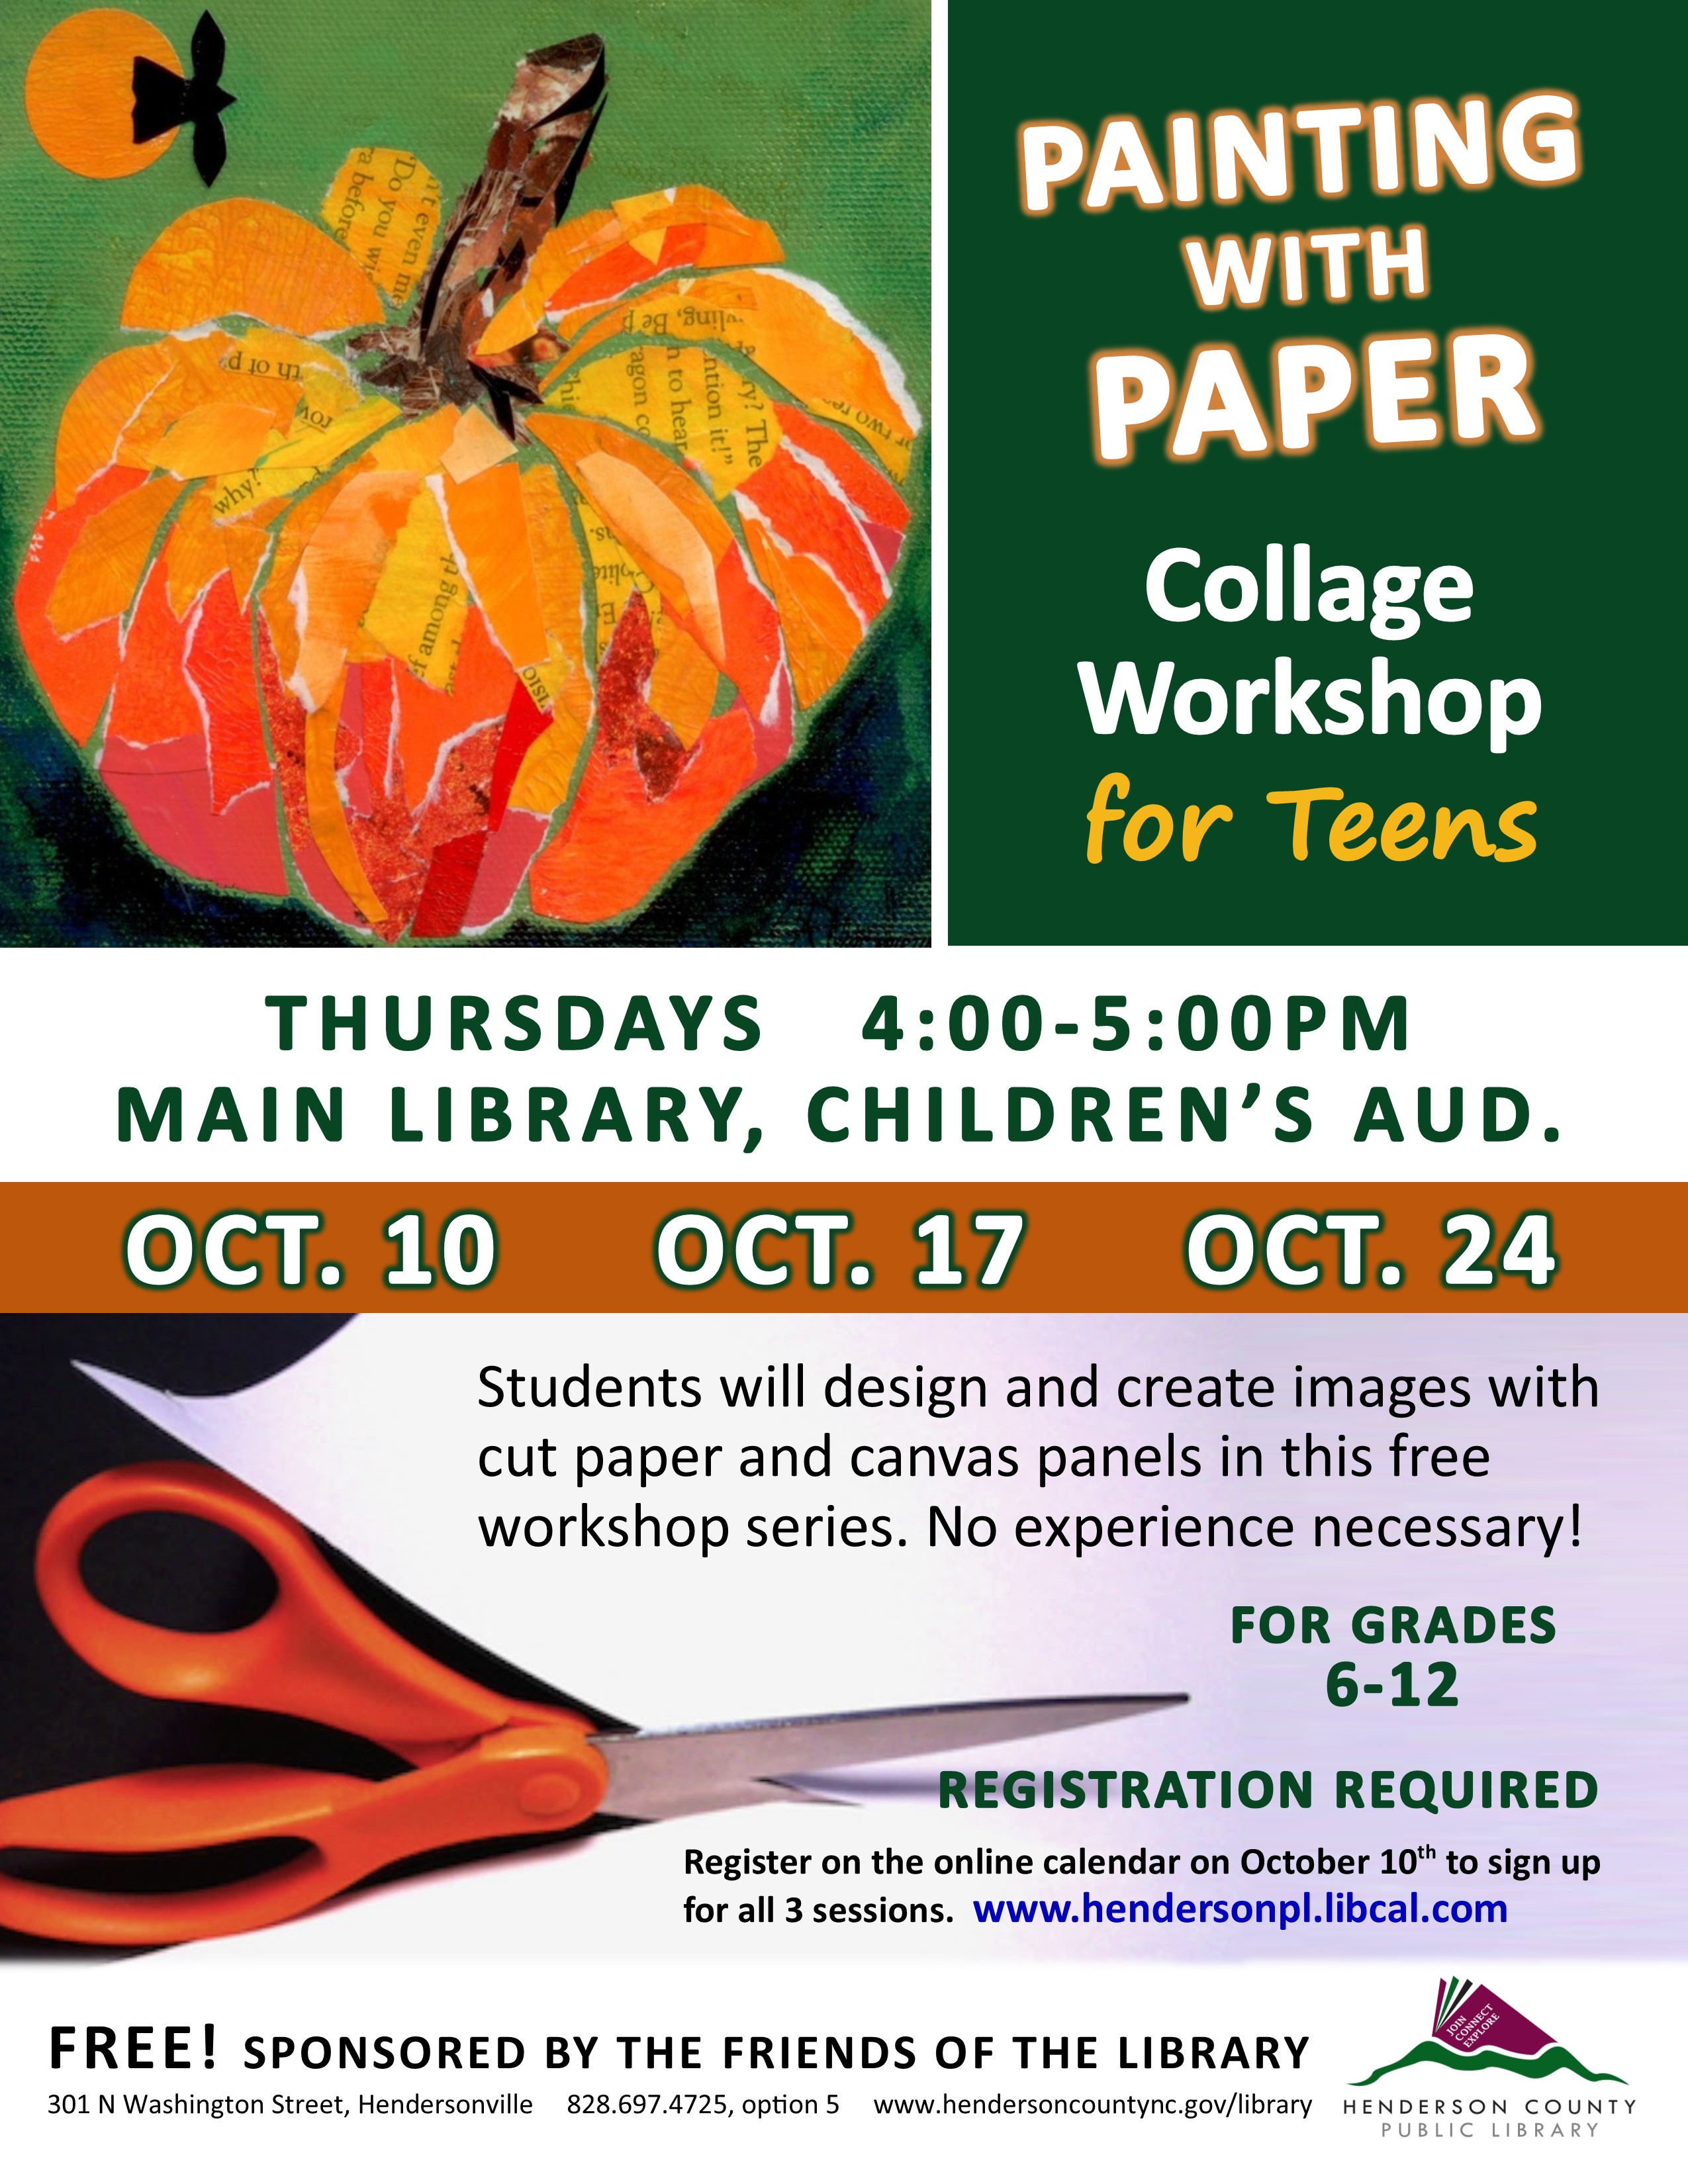 Collage Workshop for Teens-Painting With Paper